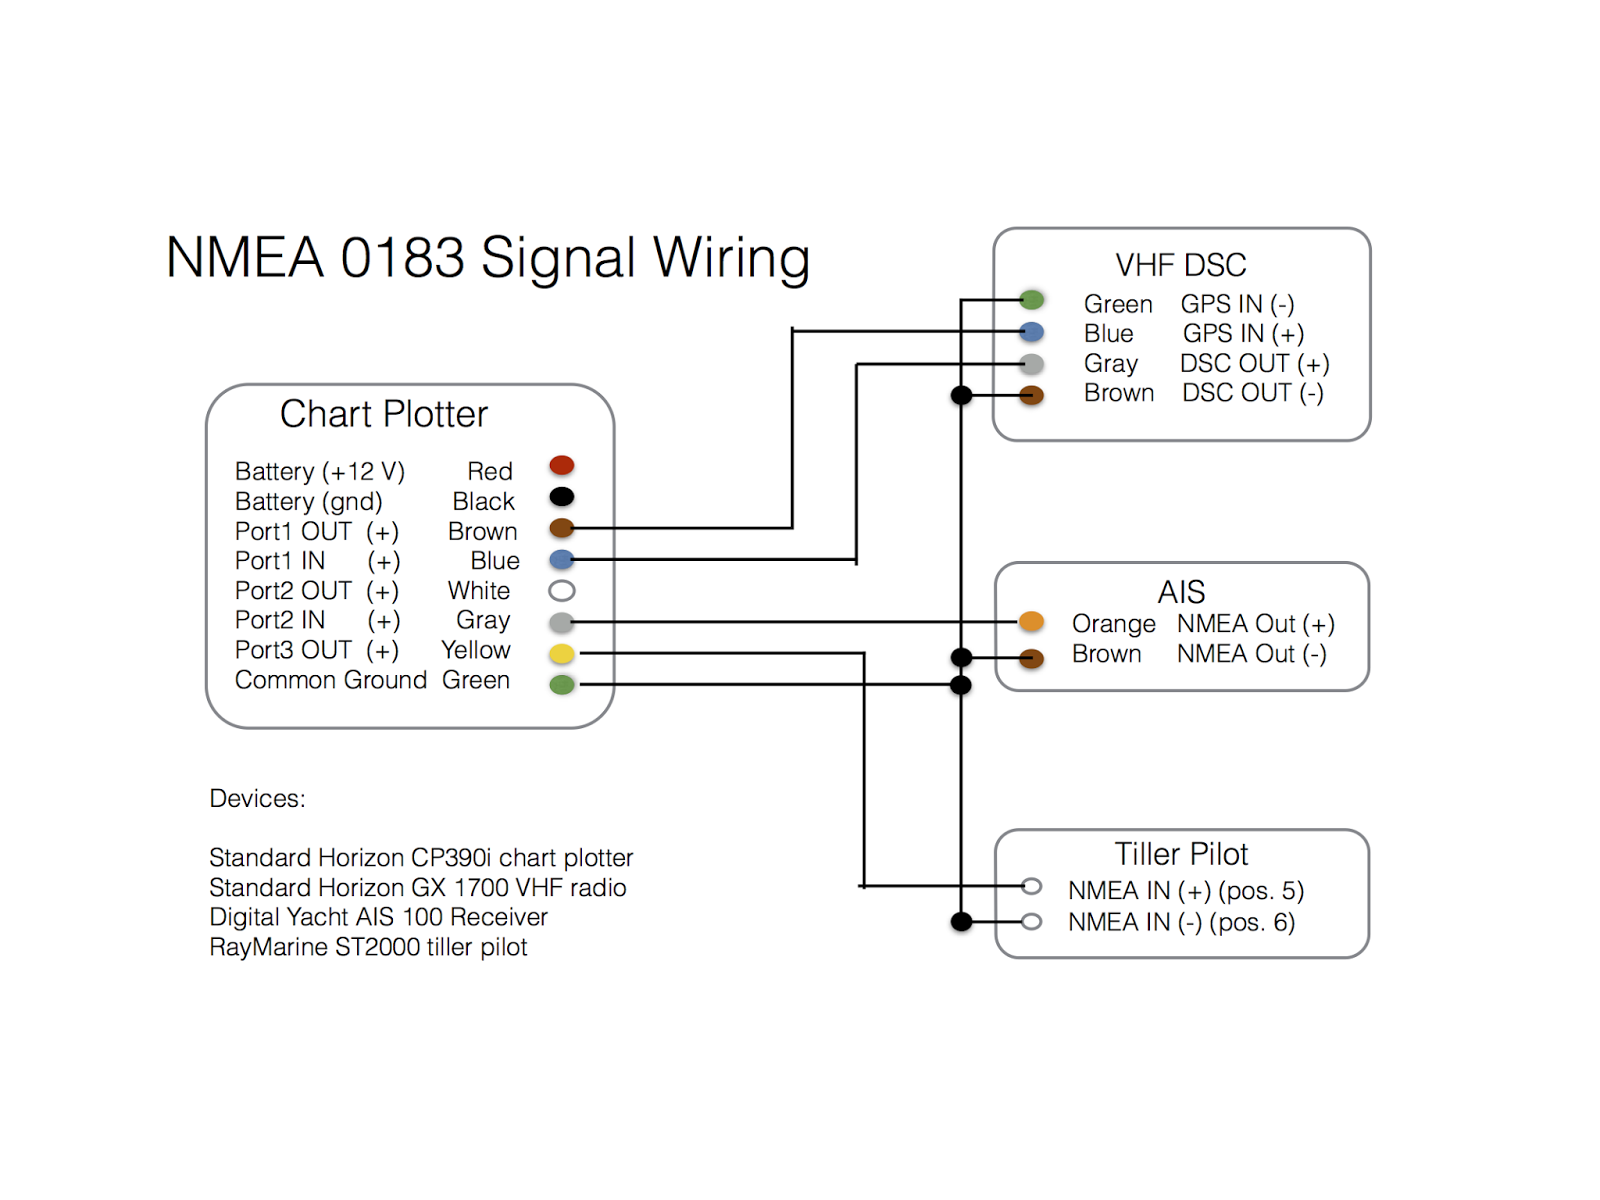 Ais Gps Wiring Diagram Diagrams Marine Radio Connecting A Chart Plotter Vhf Receiver And Tiller Pilot Using Rh Svripple Blogspot Com Nmea 2000 Color Code